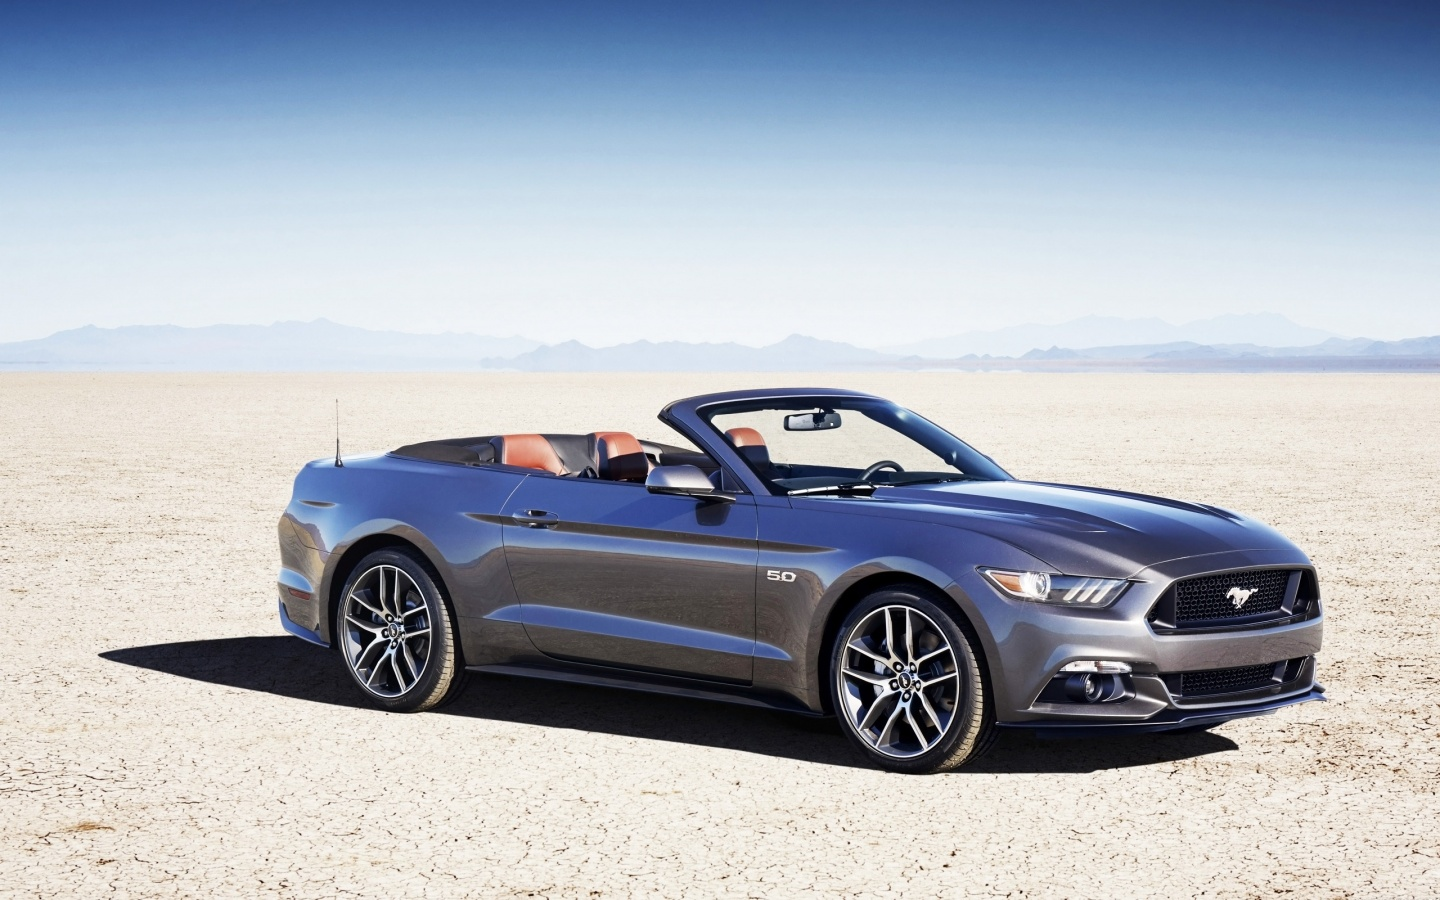 2015 Ford Mustang Convertible Wallpaper HD Car Wallpapers 1440x900